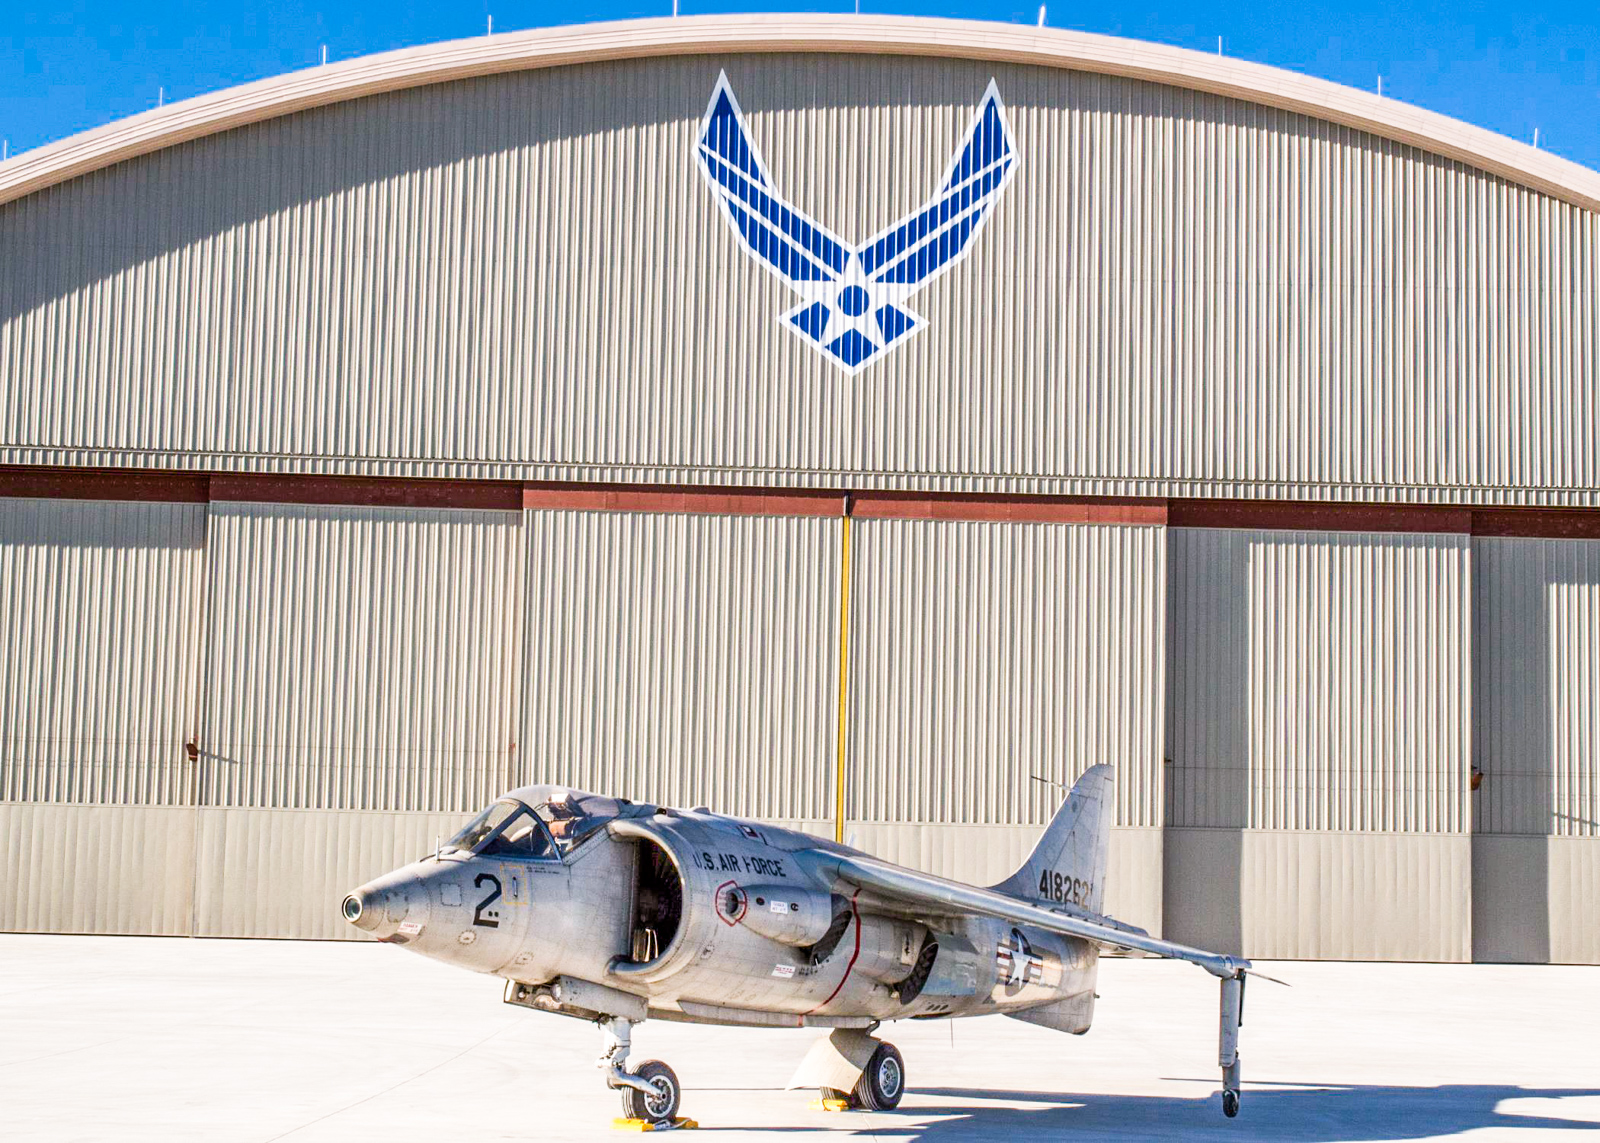 The Hawker Siddeley XV-6A Kestrel at the National Museum of the U.S. Air Force on Oct. 8, 2015. This aircraft was a predecessor to the world-beating AV-8 Harrier jump jet still in service with several military arms around the world. (U.S. Air Force photo by Ken LaRock)